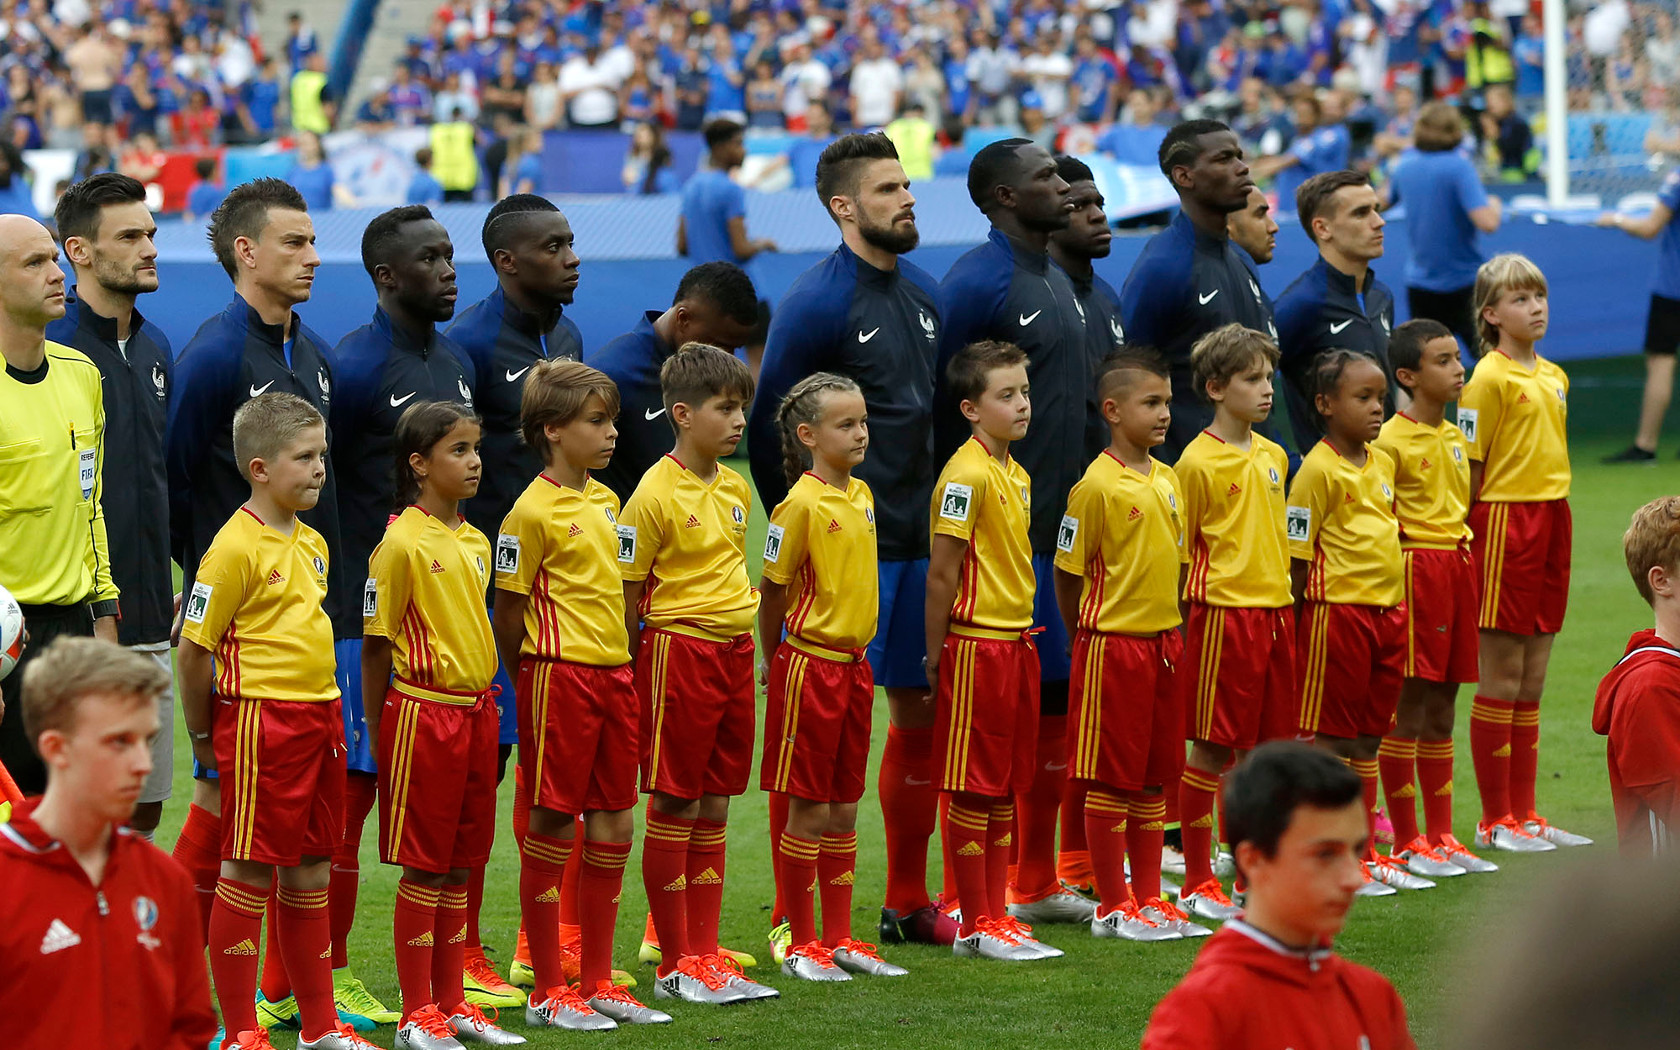 Live! Proud to have organized the McDonald's Player Escort program during UEFA Euro 2016